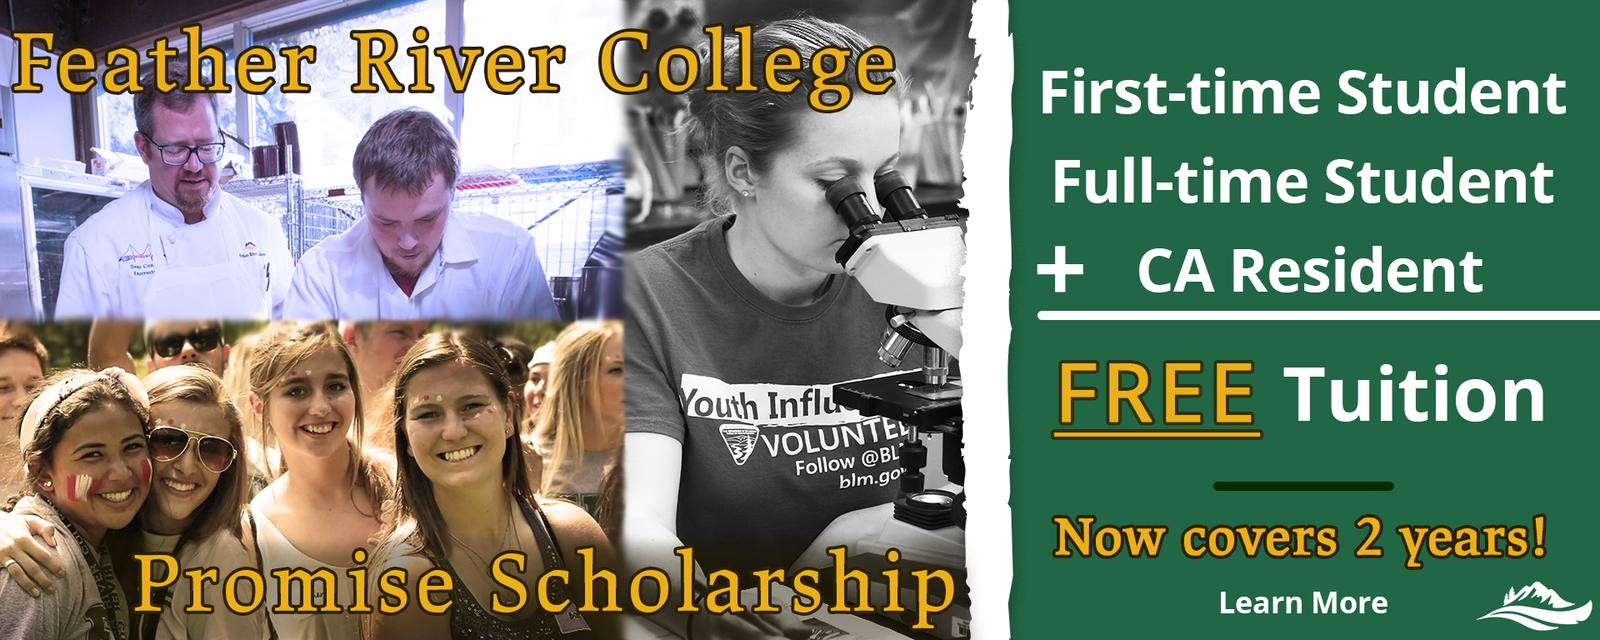 Feather River Promise Scholarship. First-time, Full-time, California Residents may receive Free Tuition. Now covers 2 year, Learn more